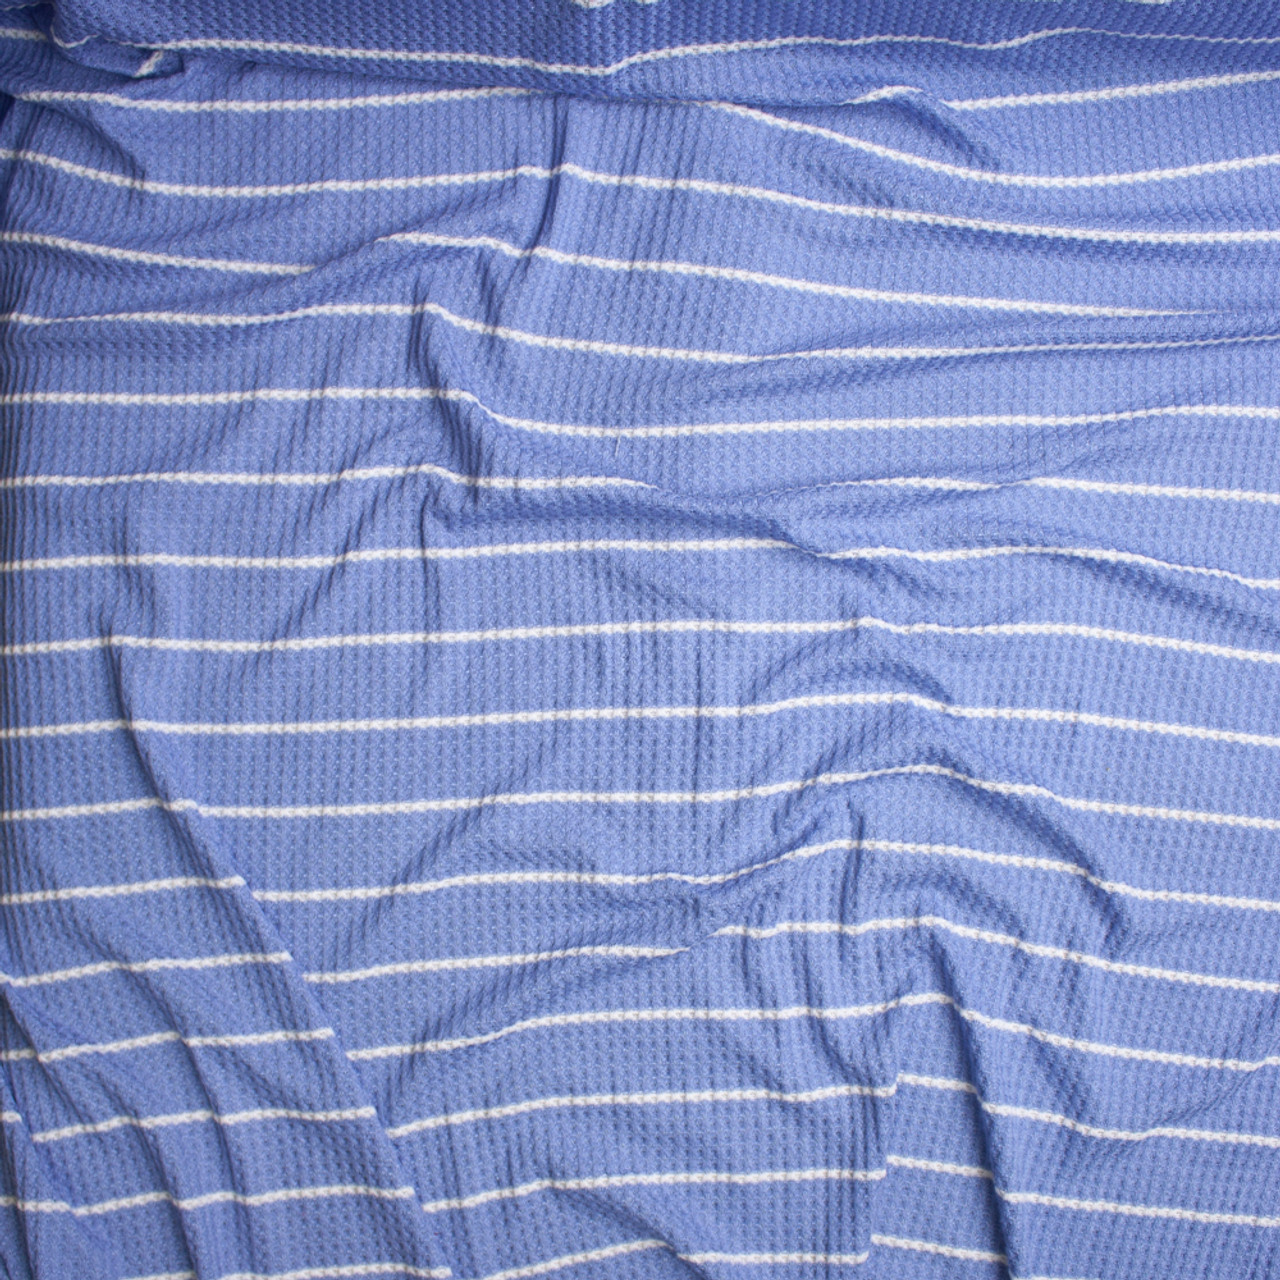 04bd3bf662 ... Light Blue with Horizontal White Striped Soft Waffle Knit Fabric By The  Yard - Wide shot